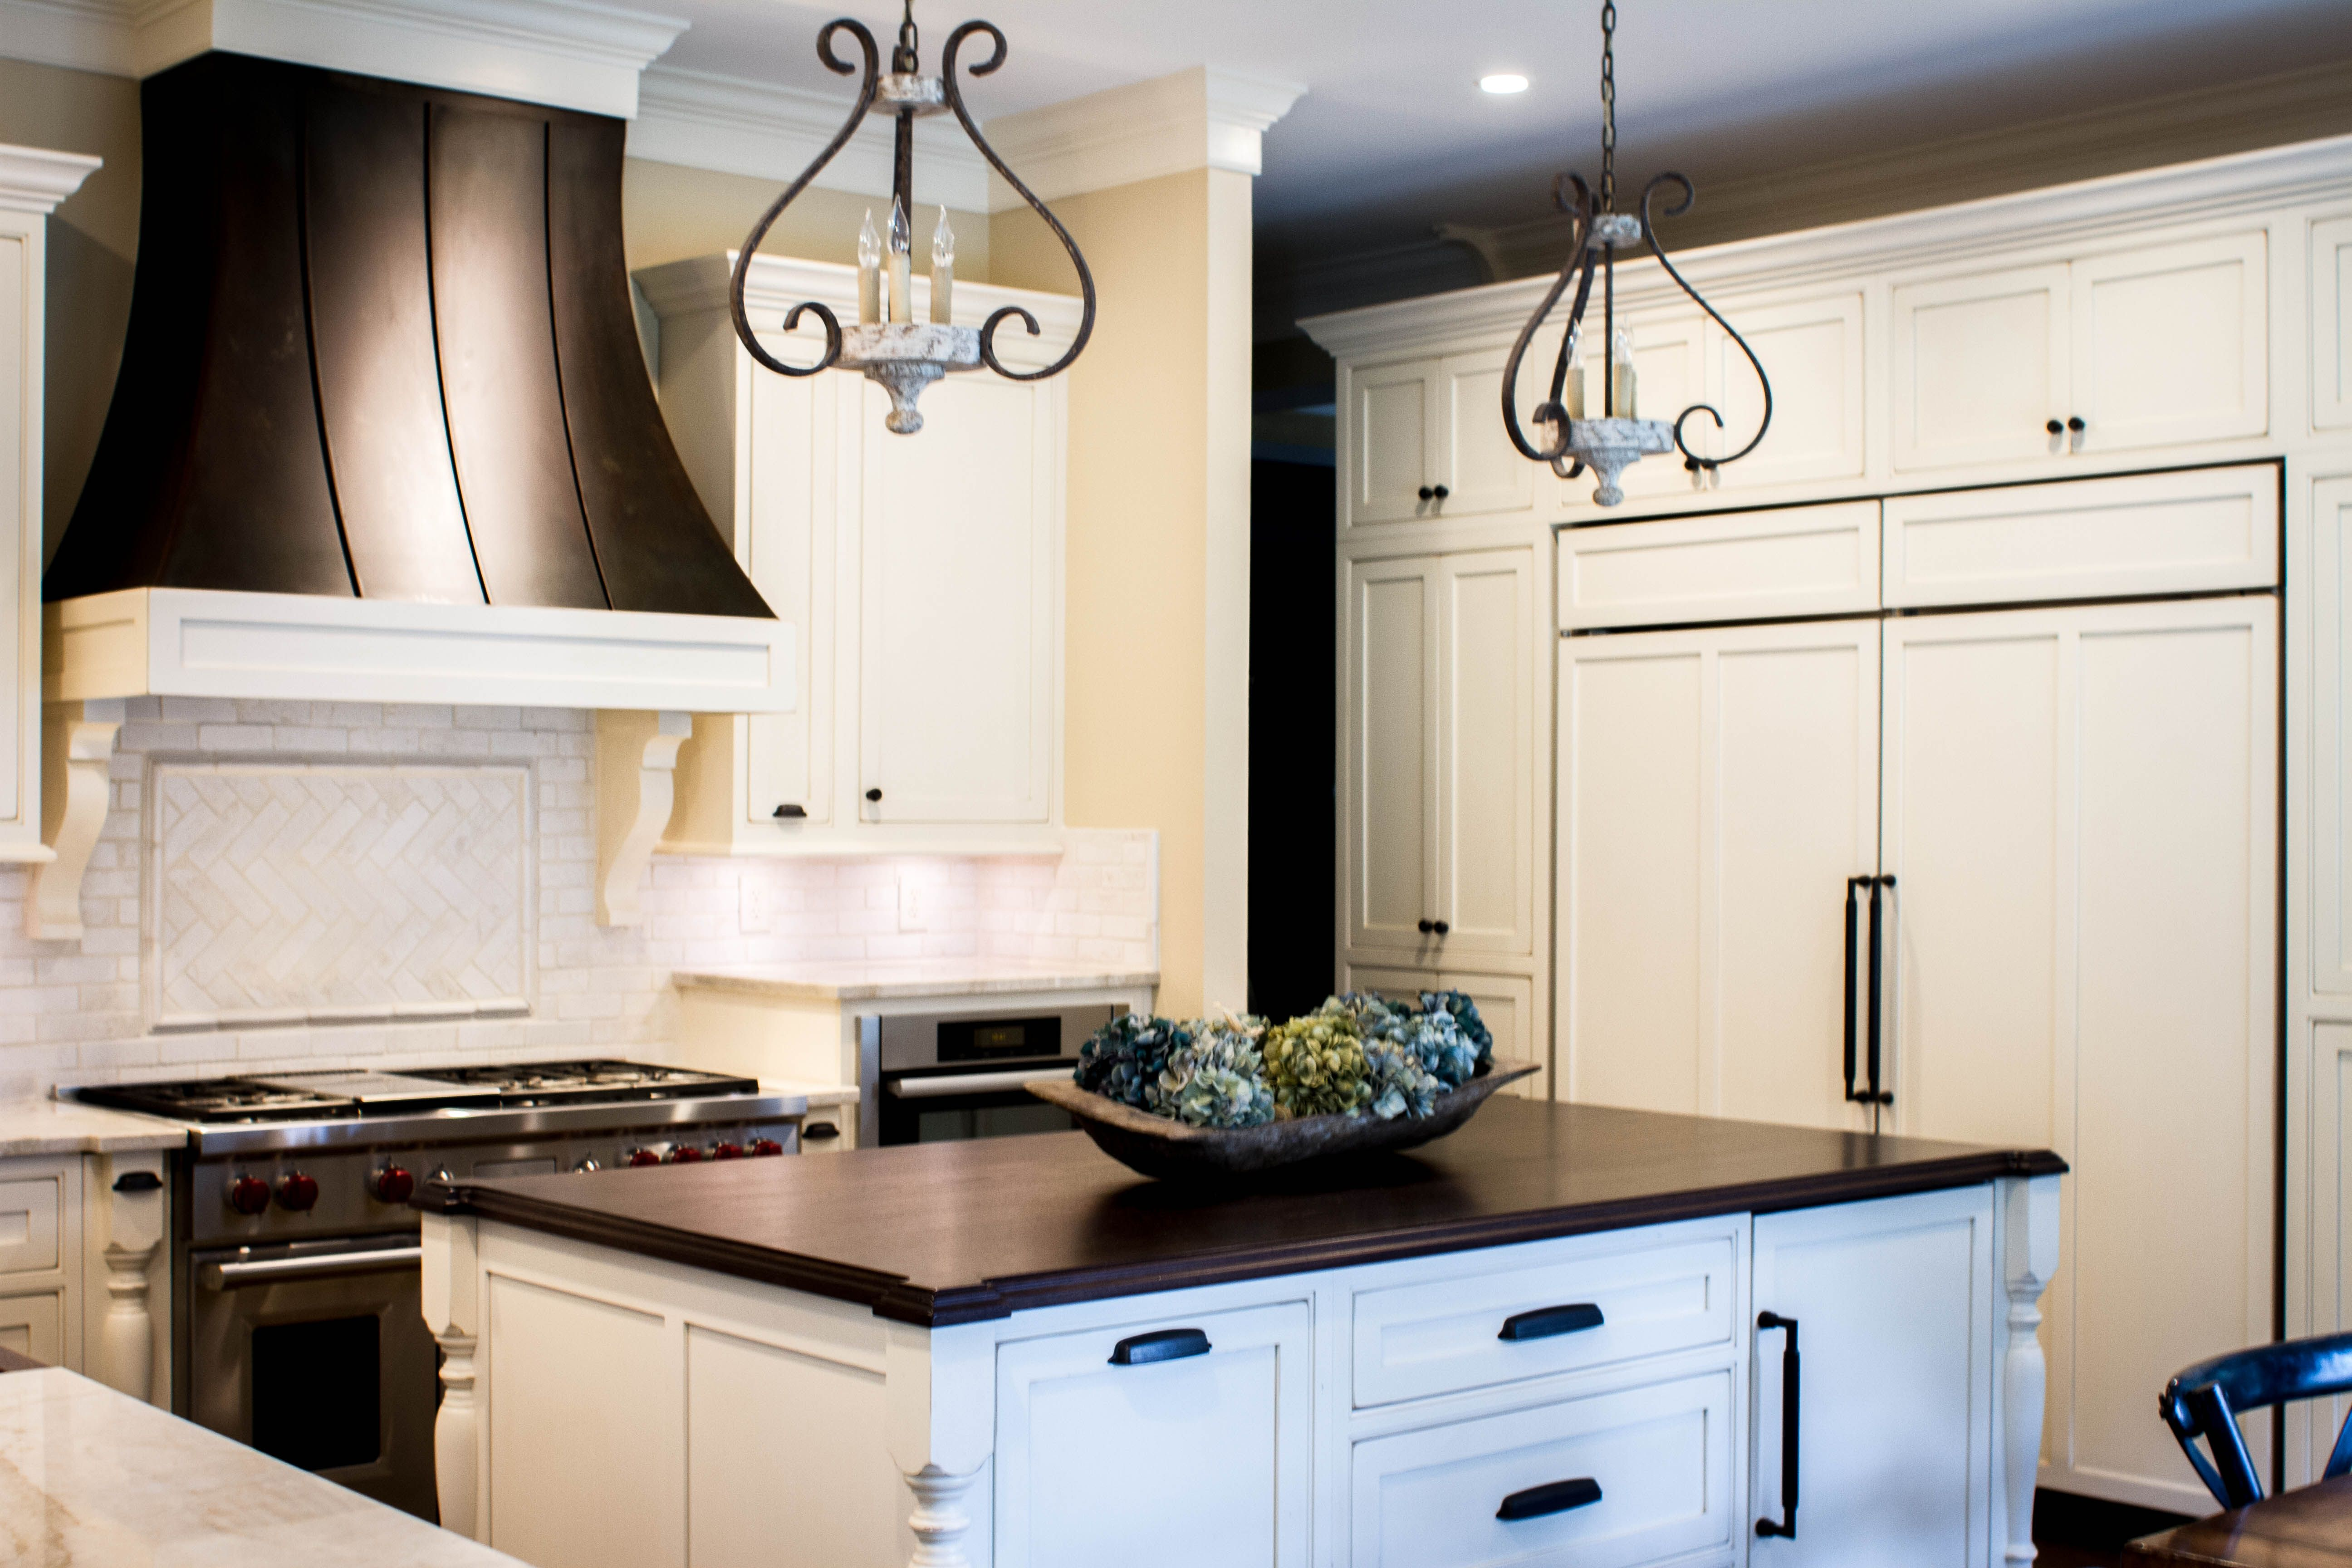 Kitchen I Just Completed In The Northern Virginia Area Kitchen Kitchen Cabinets Design